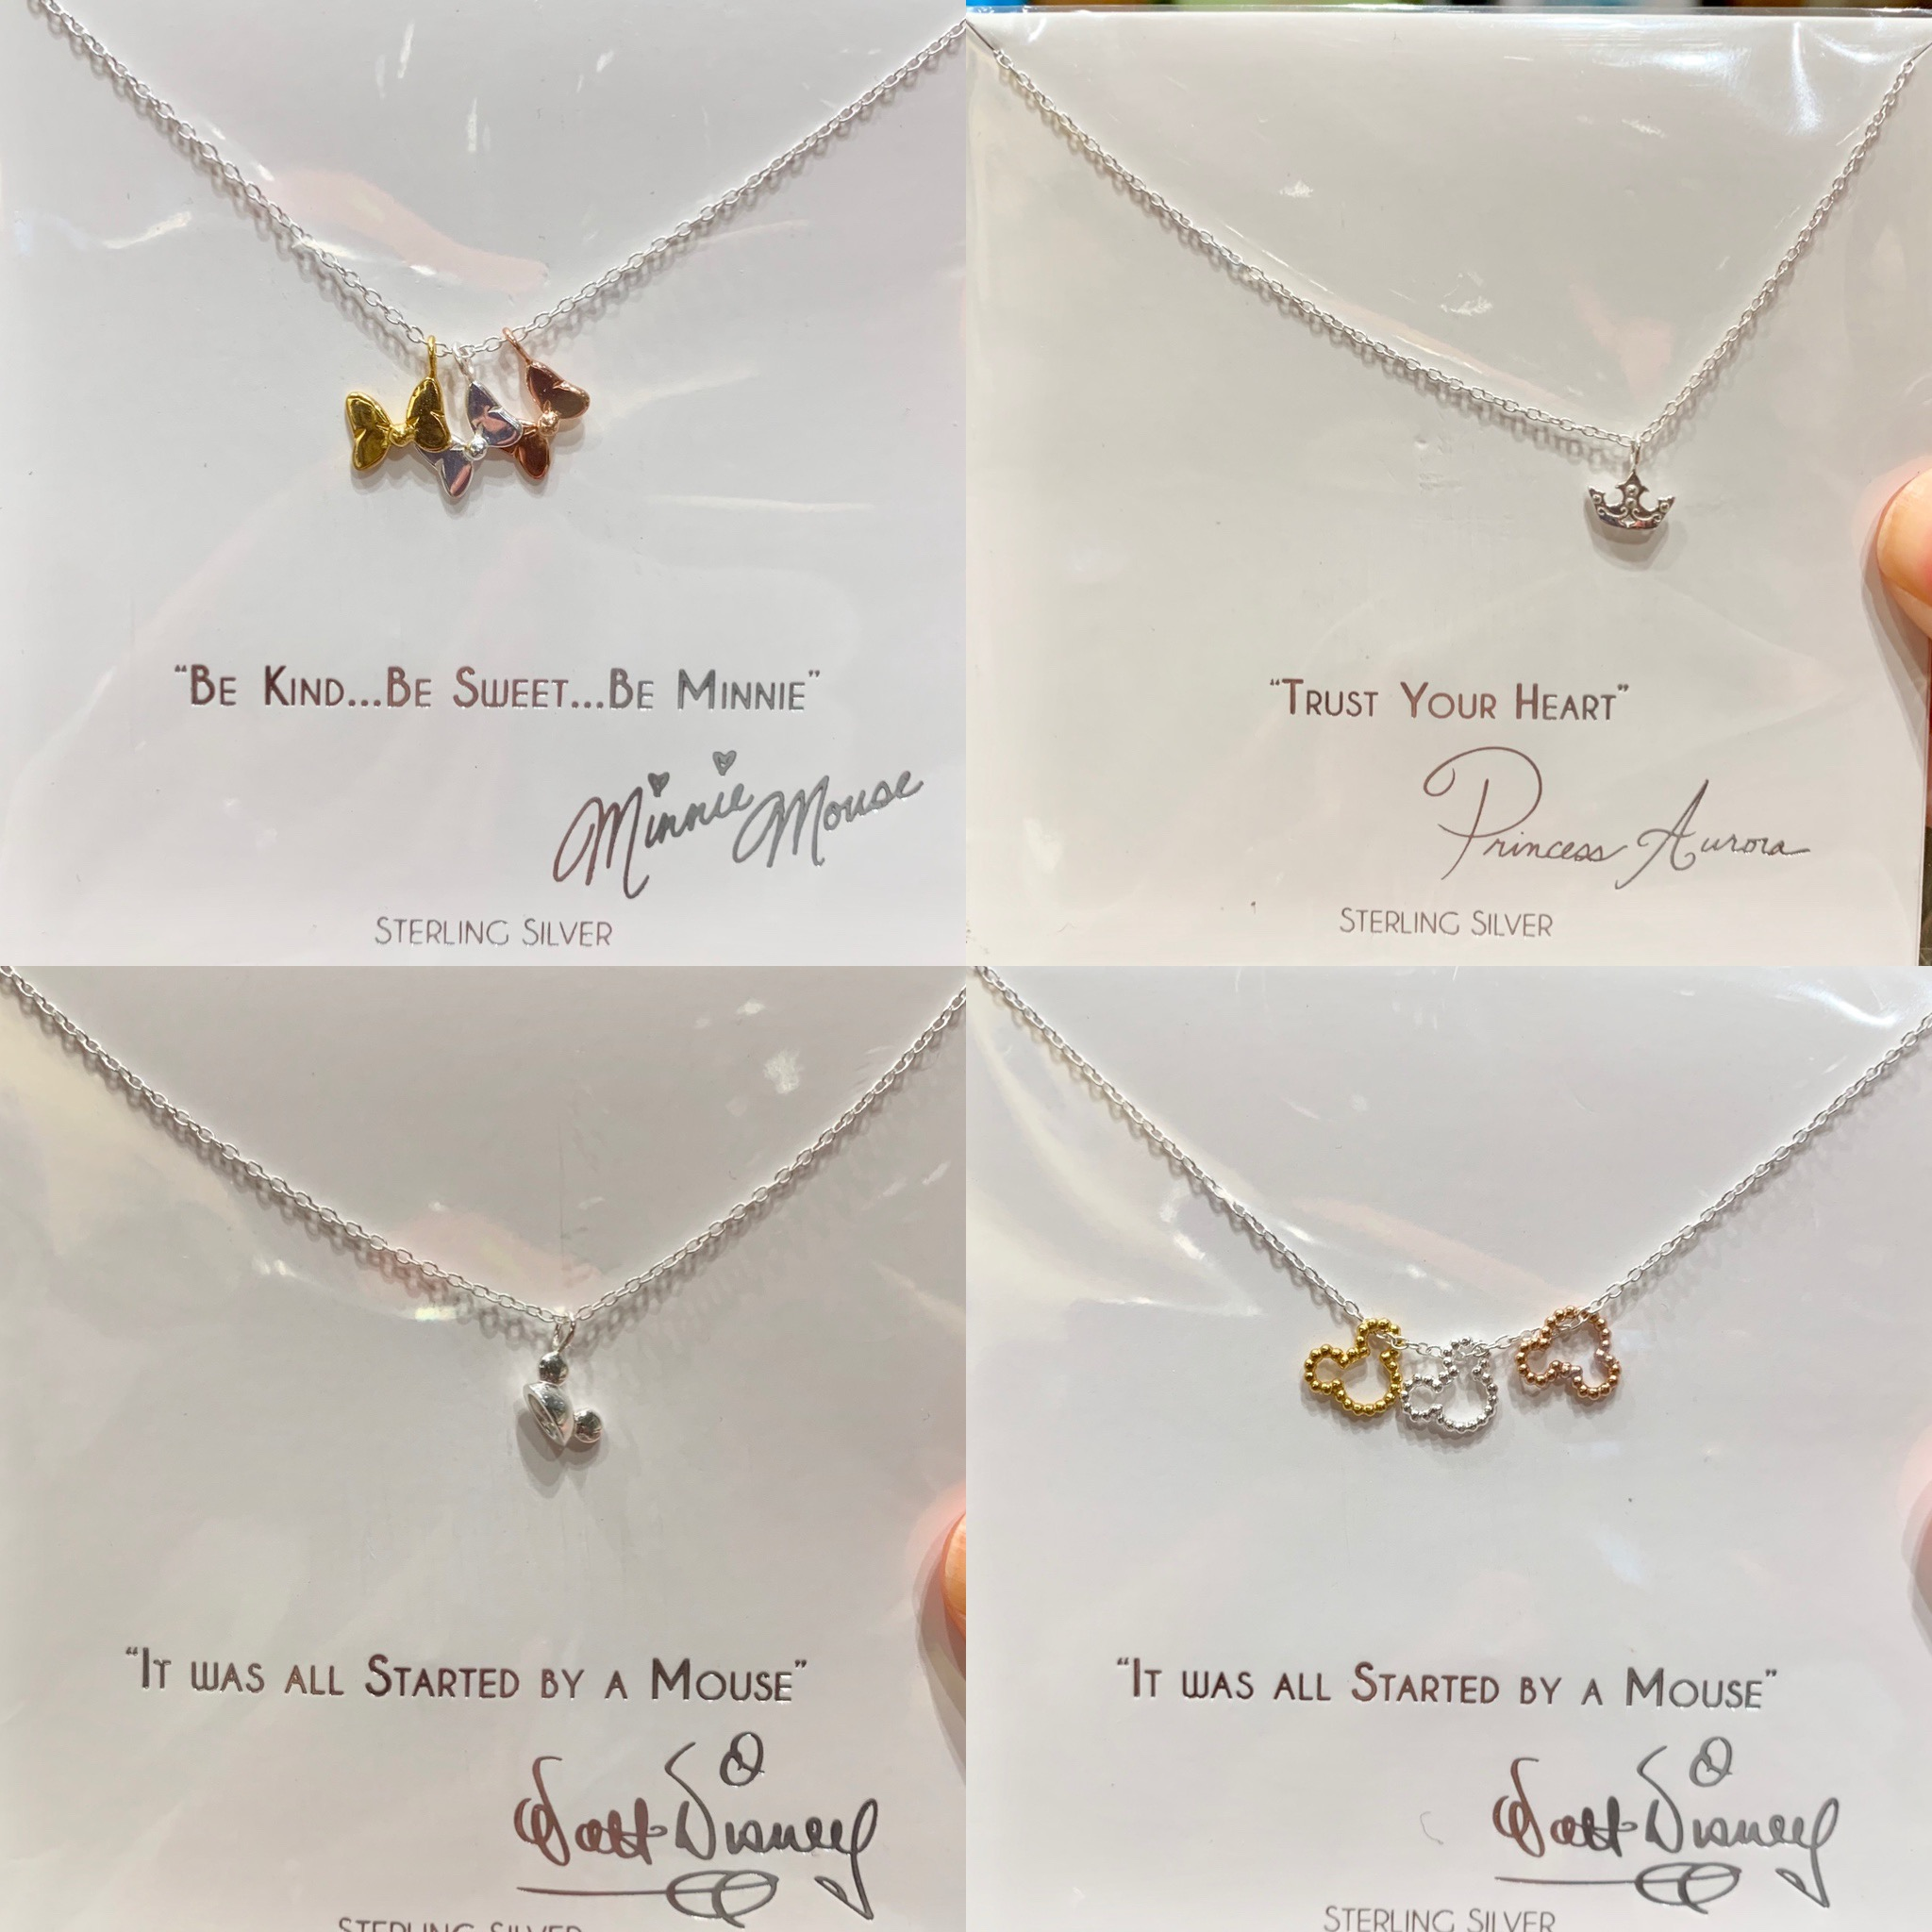 New Sterling Silver Necklaces Disney Parks Collection Jewelry World of Disney Disneyland Resort